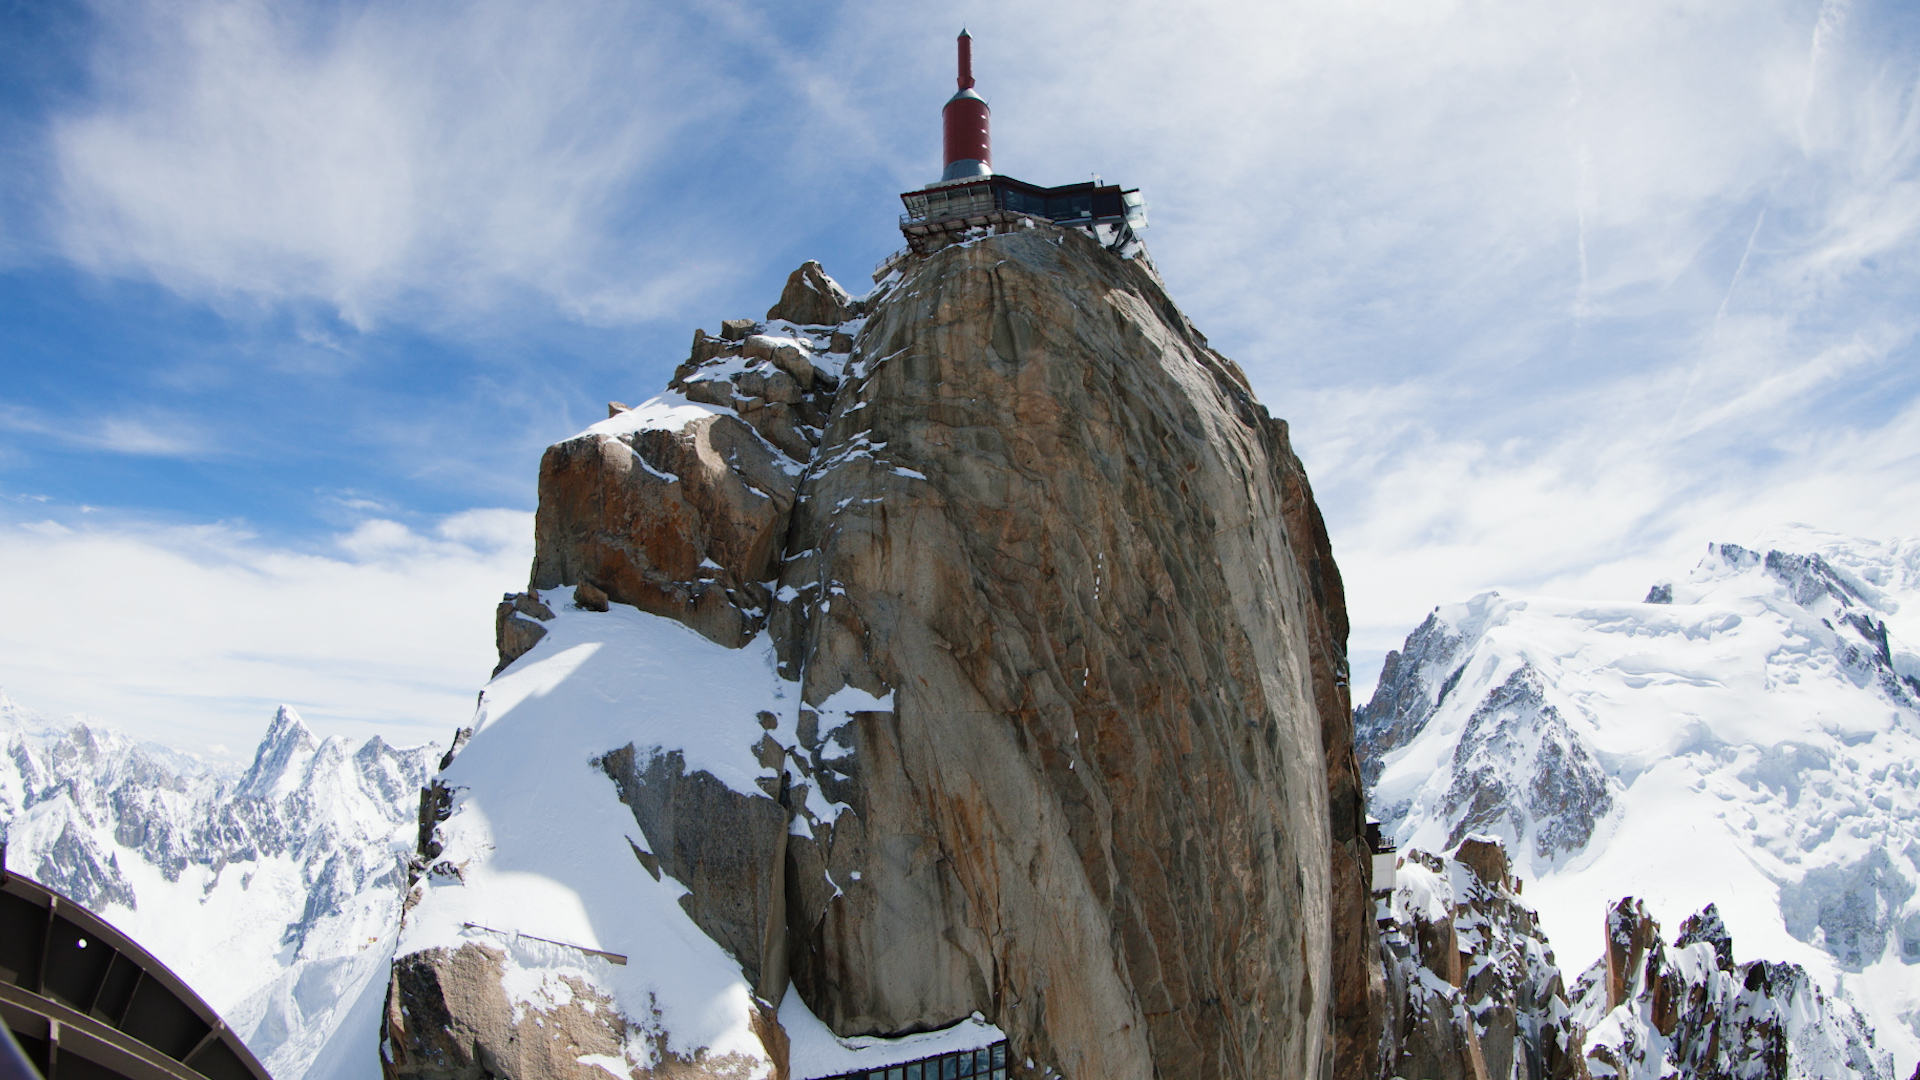 High above Chamonix, the needle of the Aiguille du Midi lift station sits in the sky at 3842m